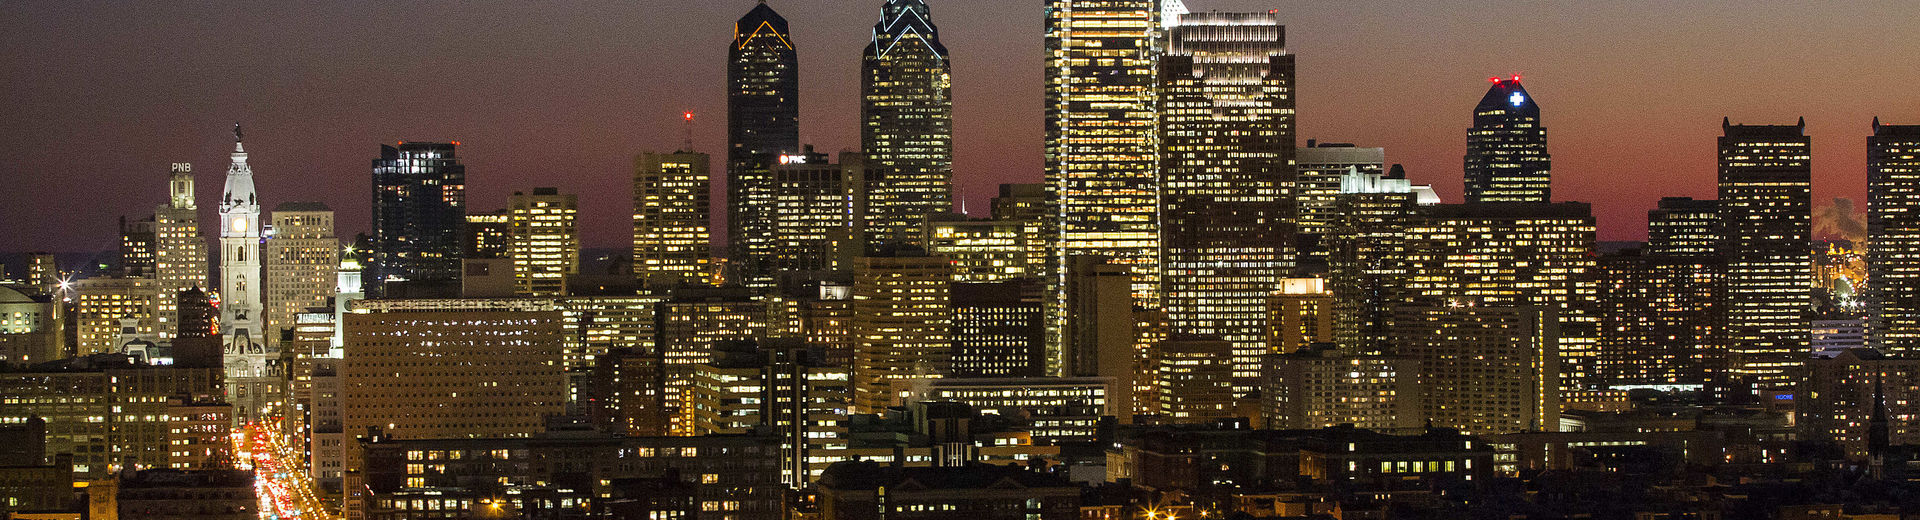 The Philadelphia center city skyline at dusk.